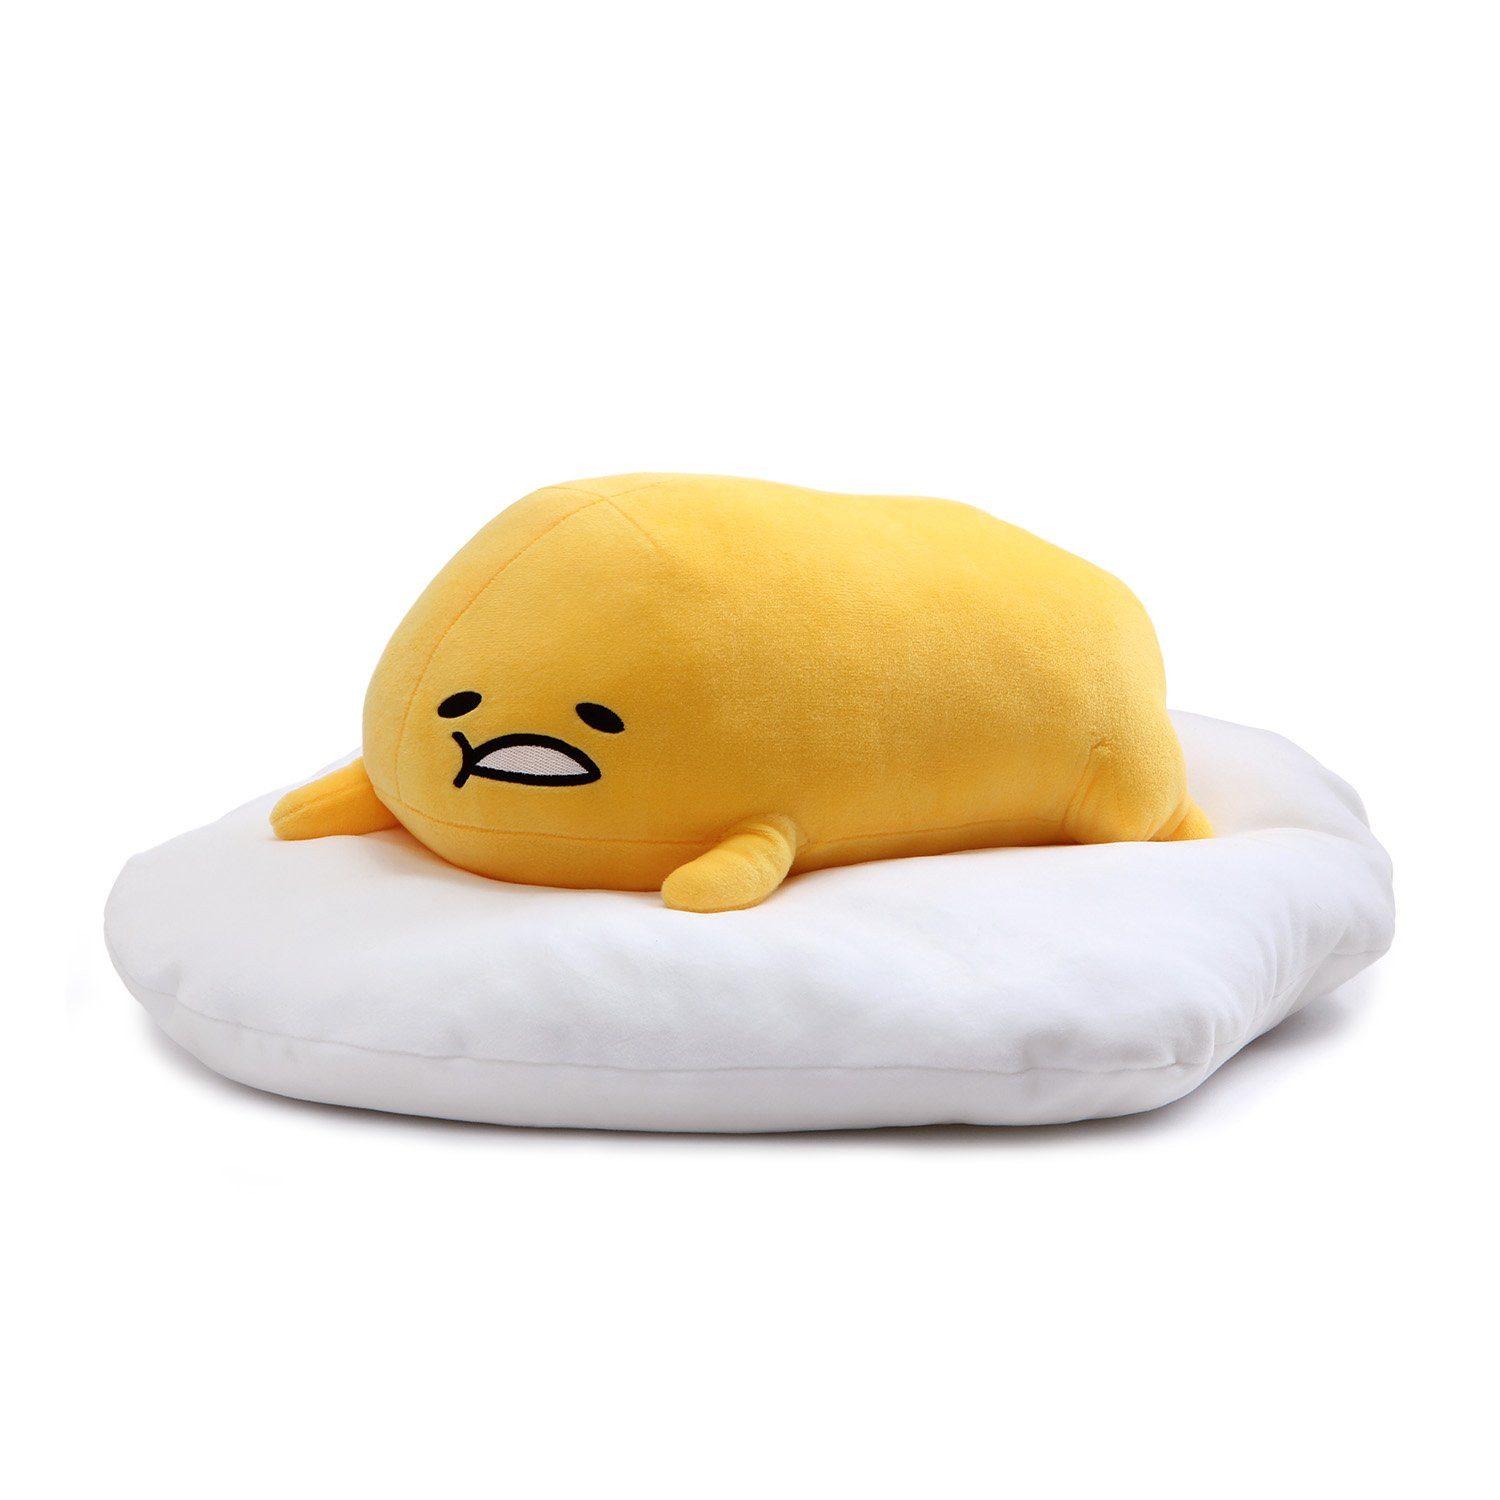 GUND Gudetama ''Lazy Laying Down Pose'' Stuffed Animal Plush, 17'' by GUND